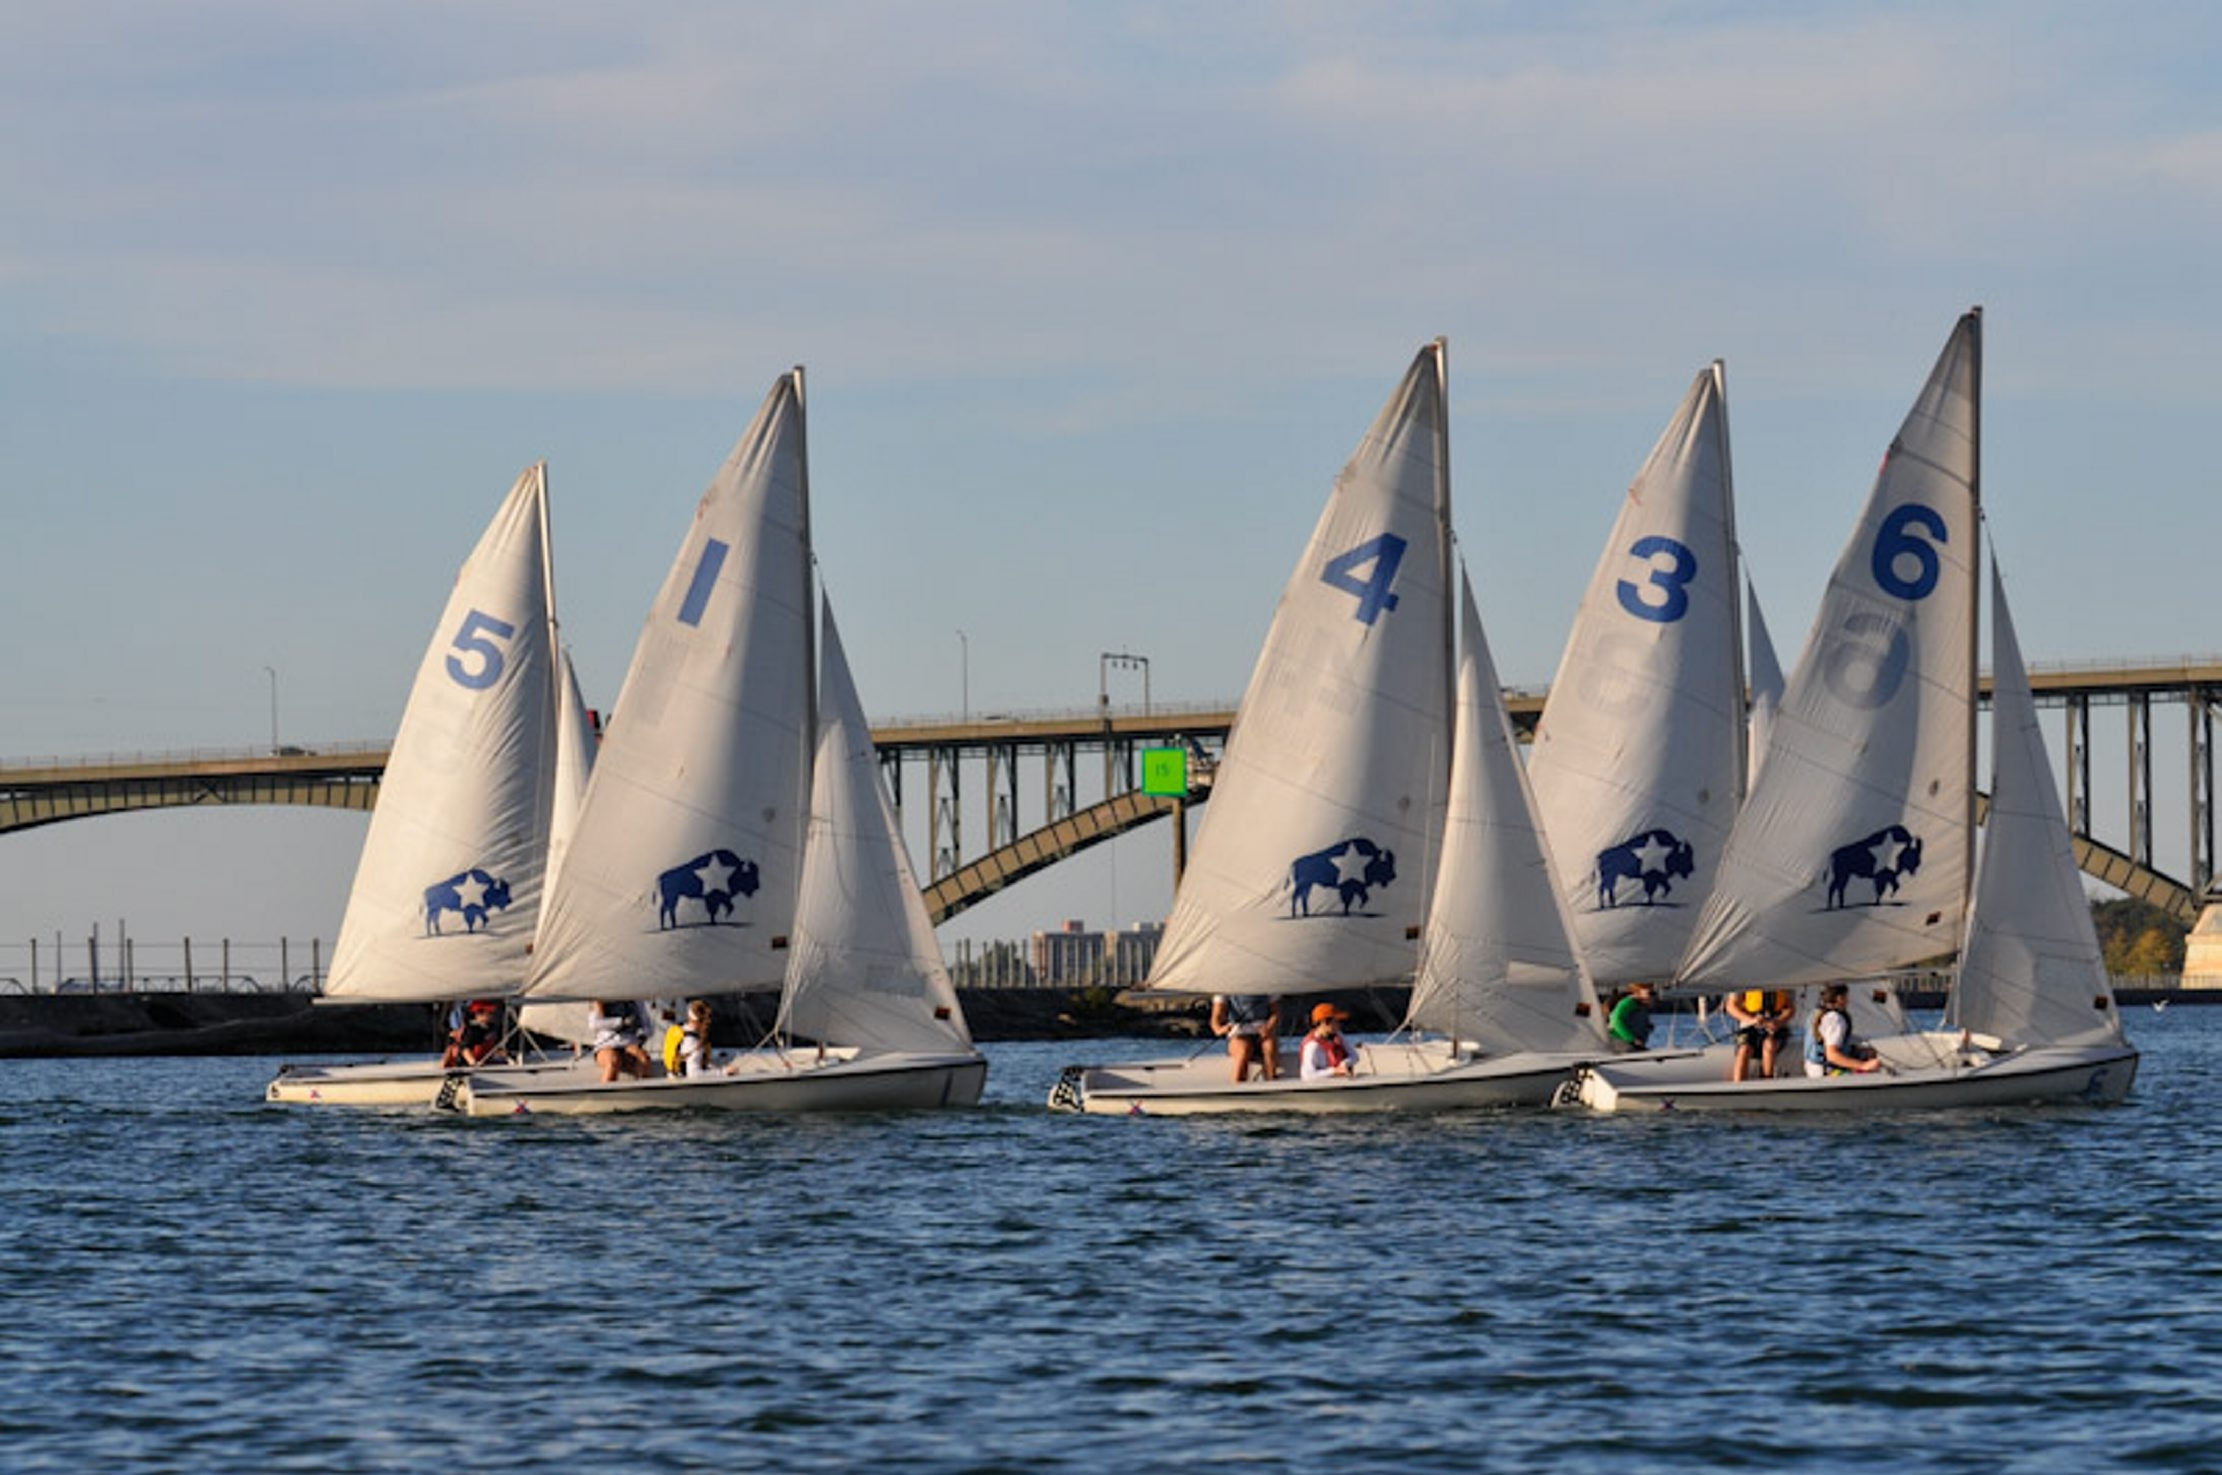 The Buffalo Yacht Club offers sailing programs for area high schoolers.